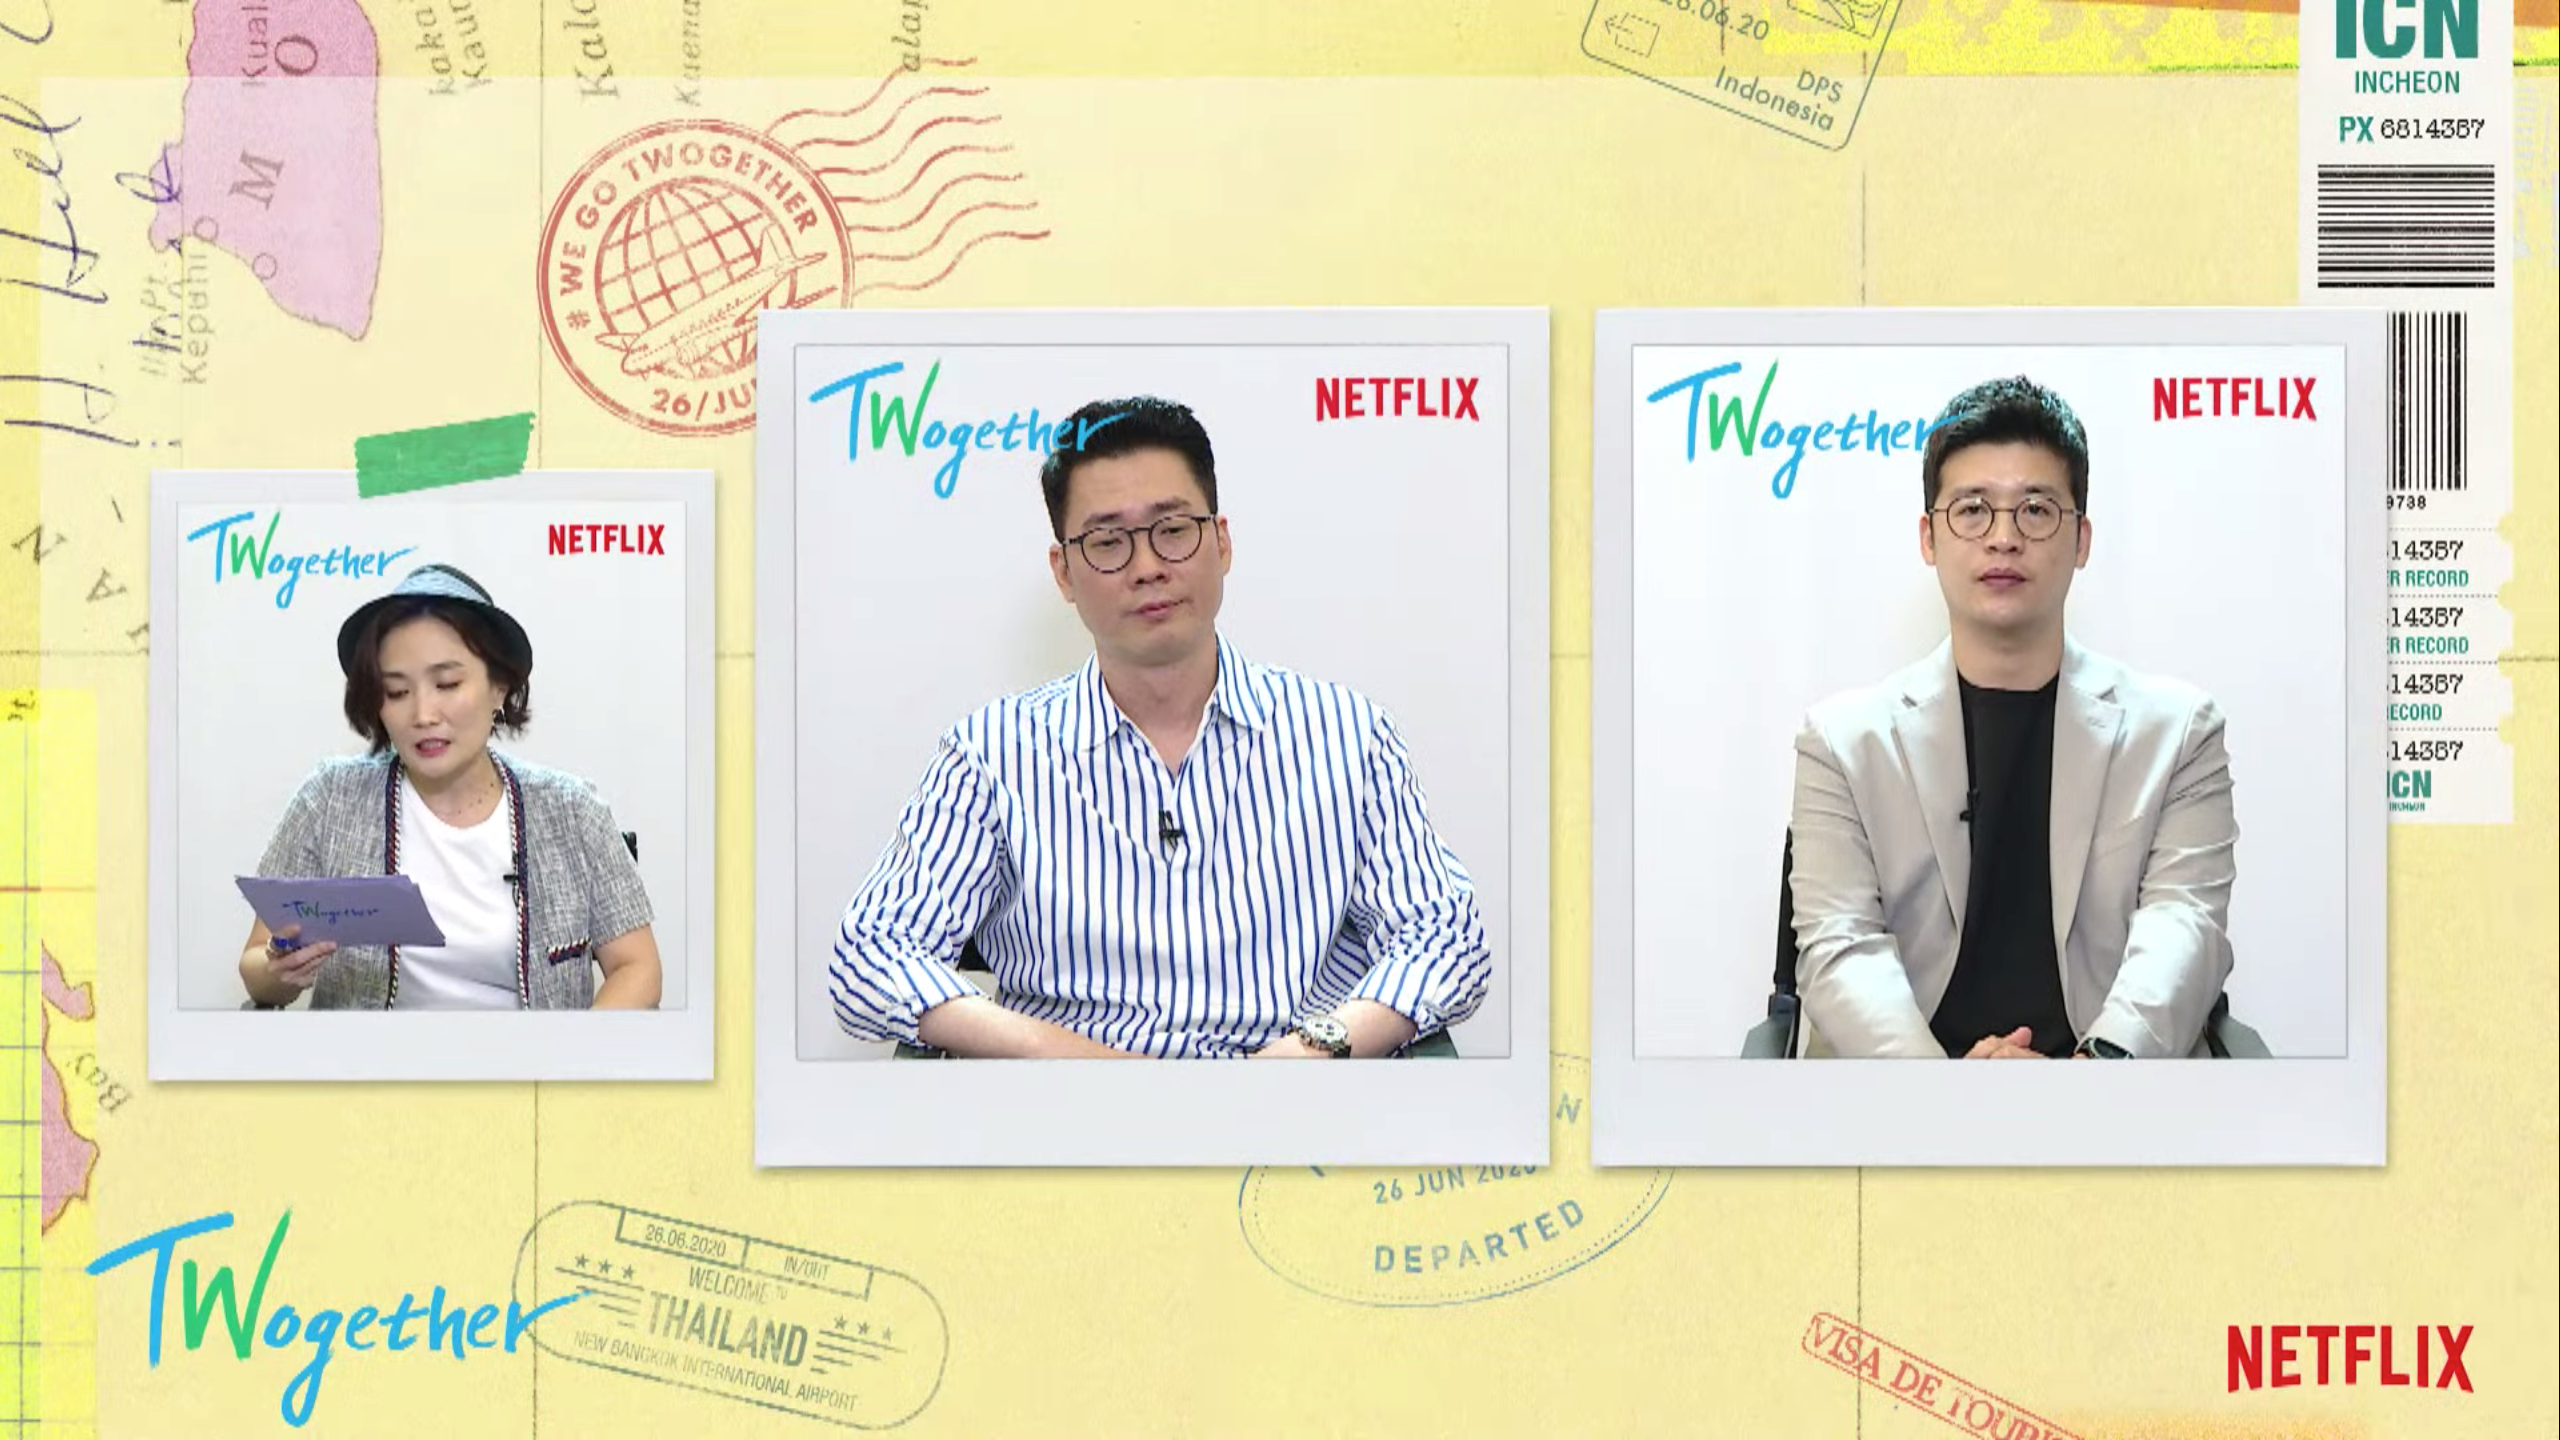 PDs took travel recommendations which suited Seunggi and Jasper